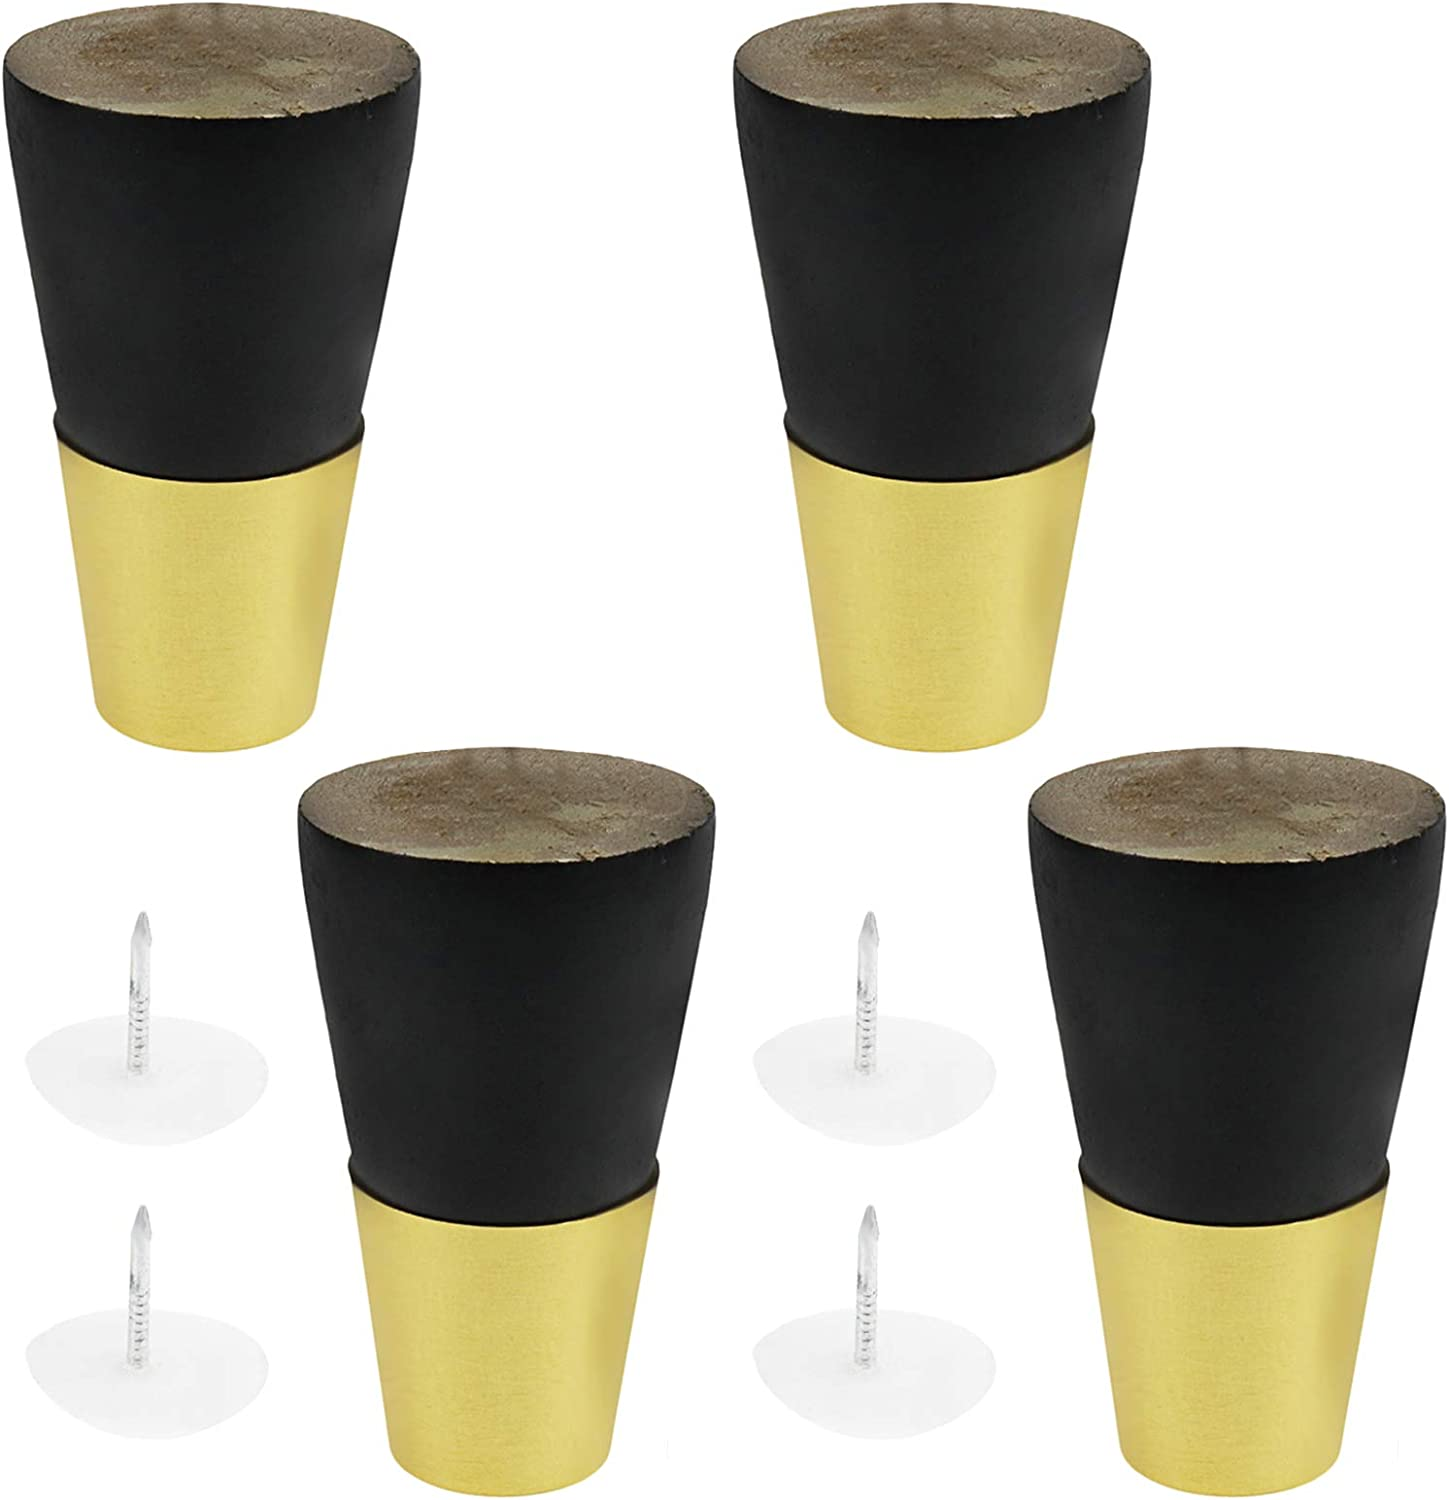 Geesatis 4 pcs Wooden Furniture Legs 8 cm / 3 inch Solid Wood Tapered Furniture Replacement Feet for Sofa Bed Coffee Table Cabinet Furniture, with Mounting Screws, Black